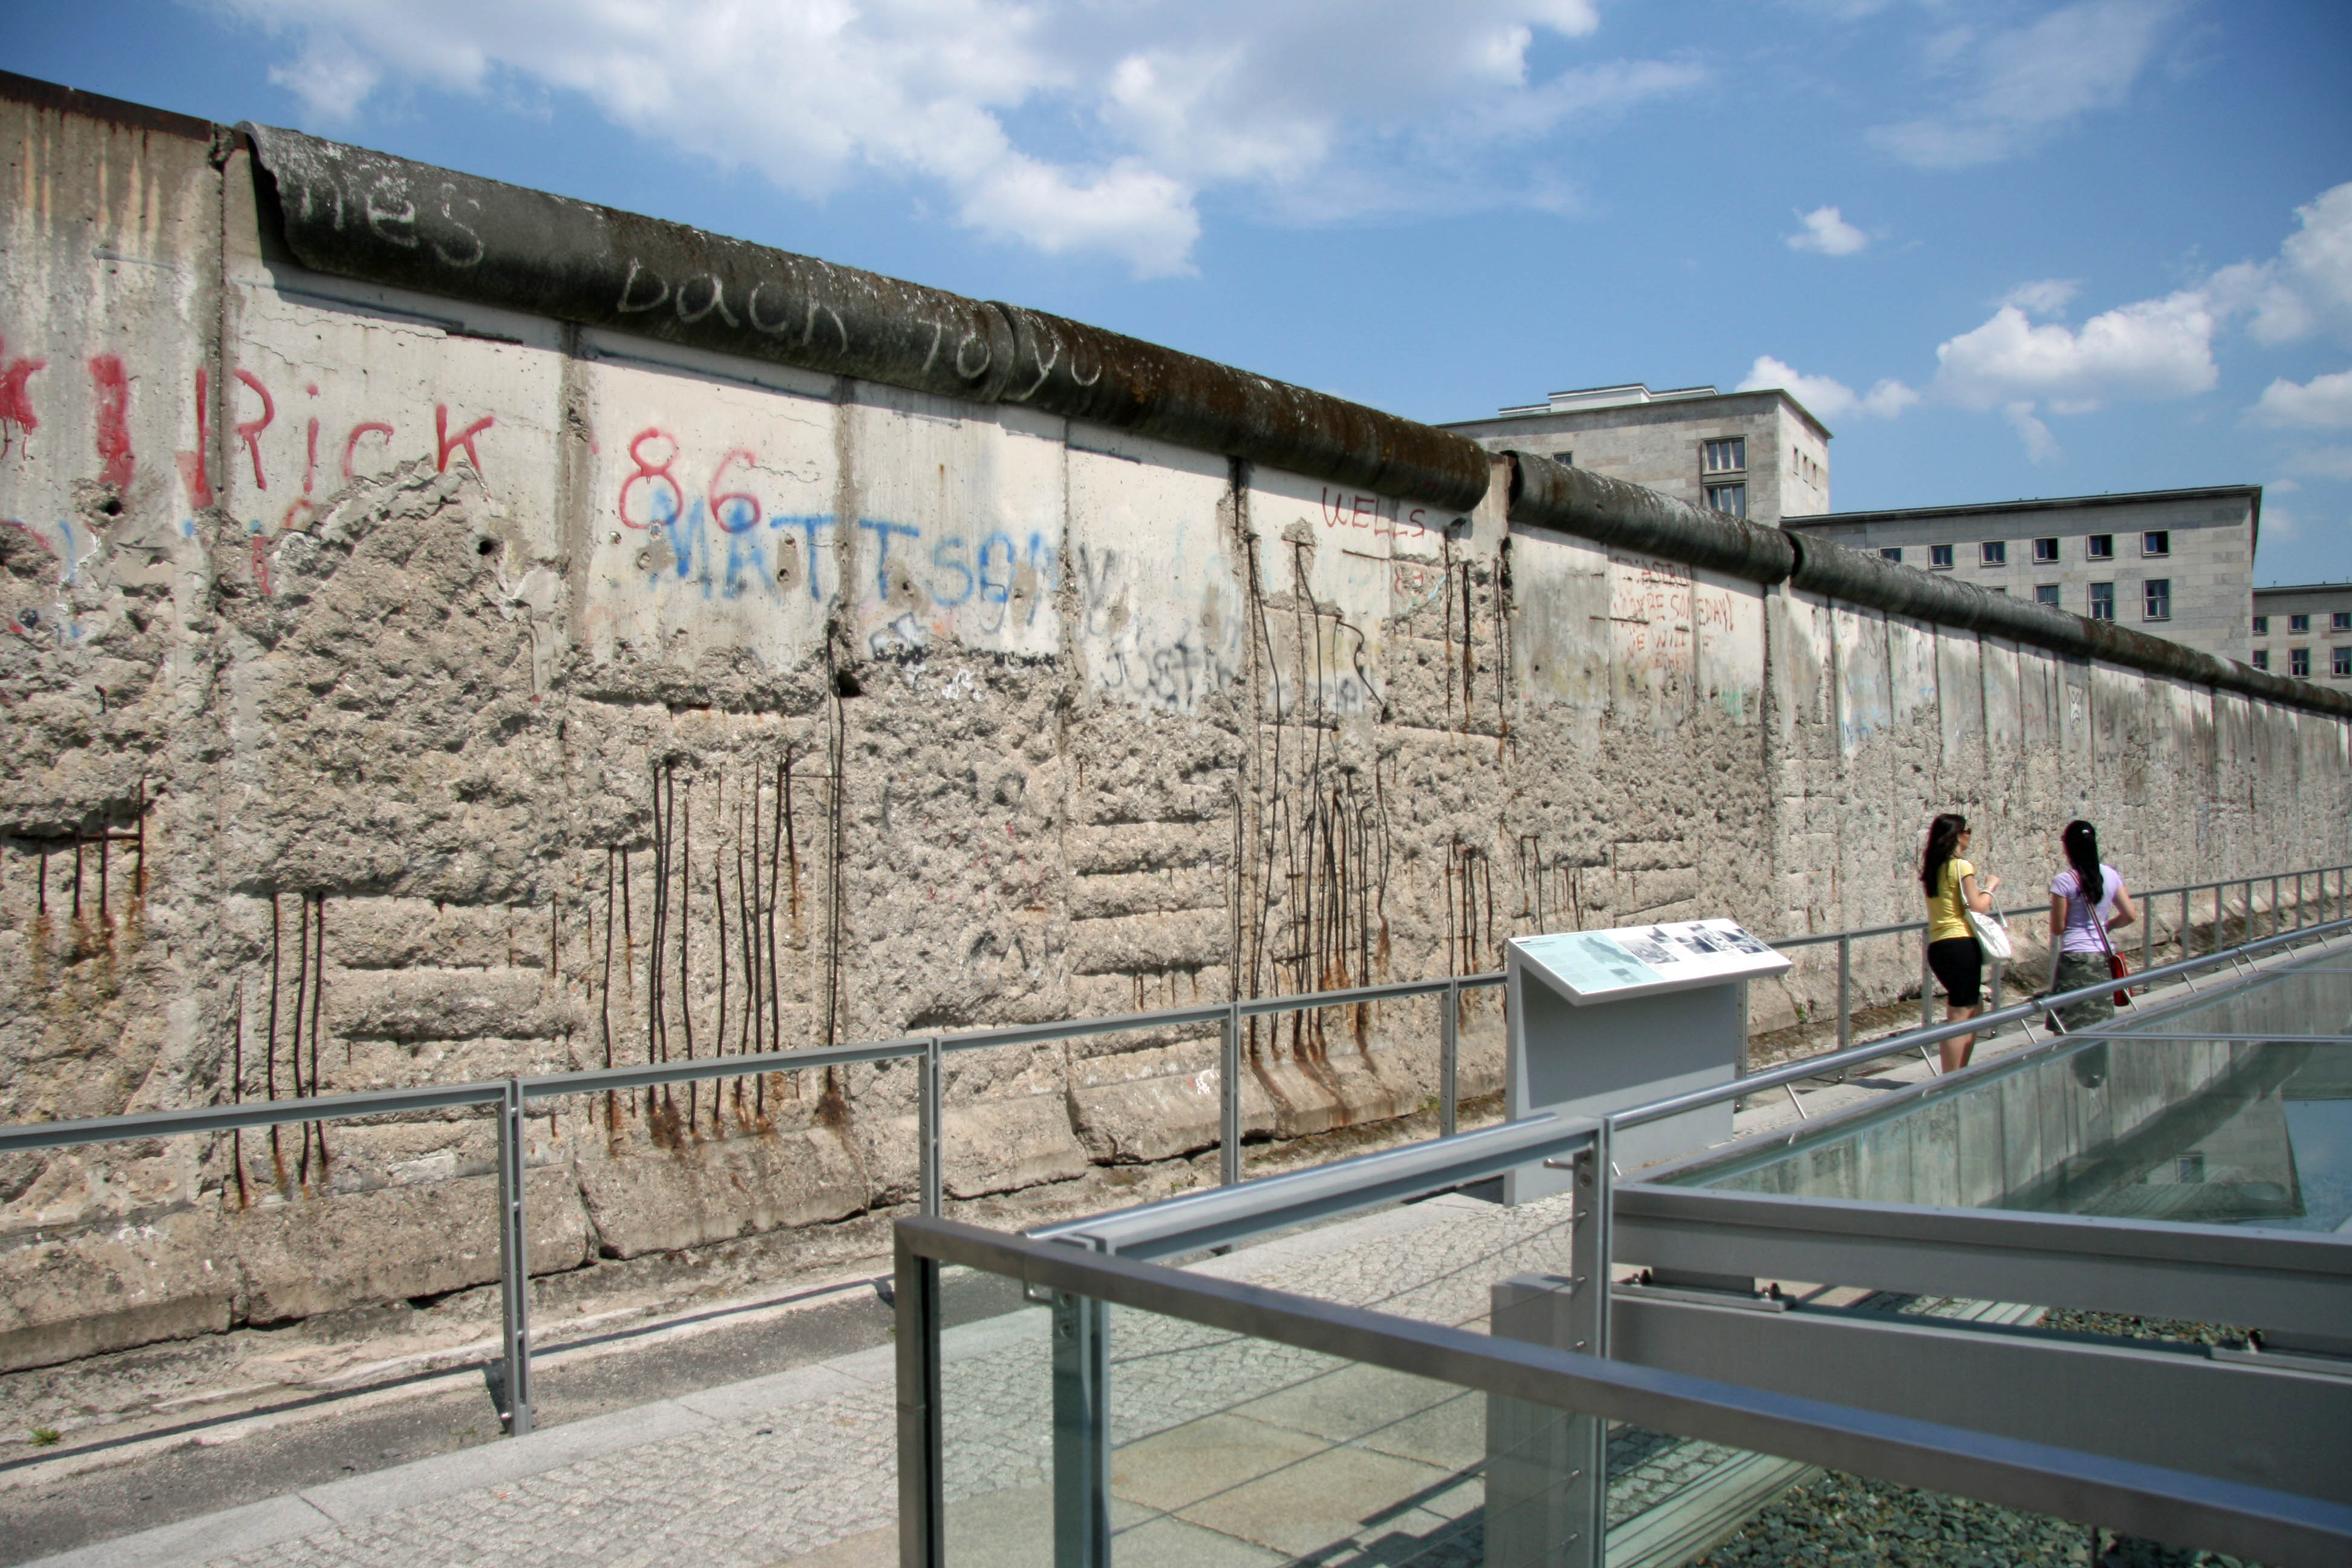 The Berlin Wall Monument at Topographie des Terrors (Topography of Terror) in Berlin